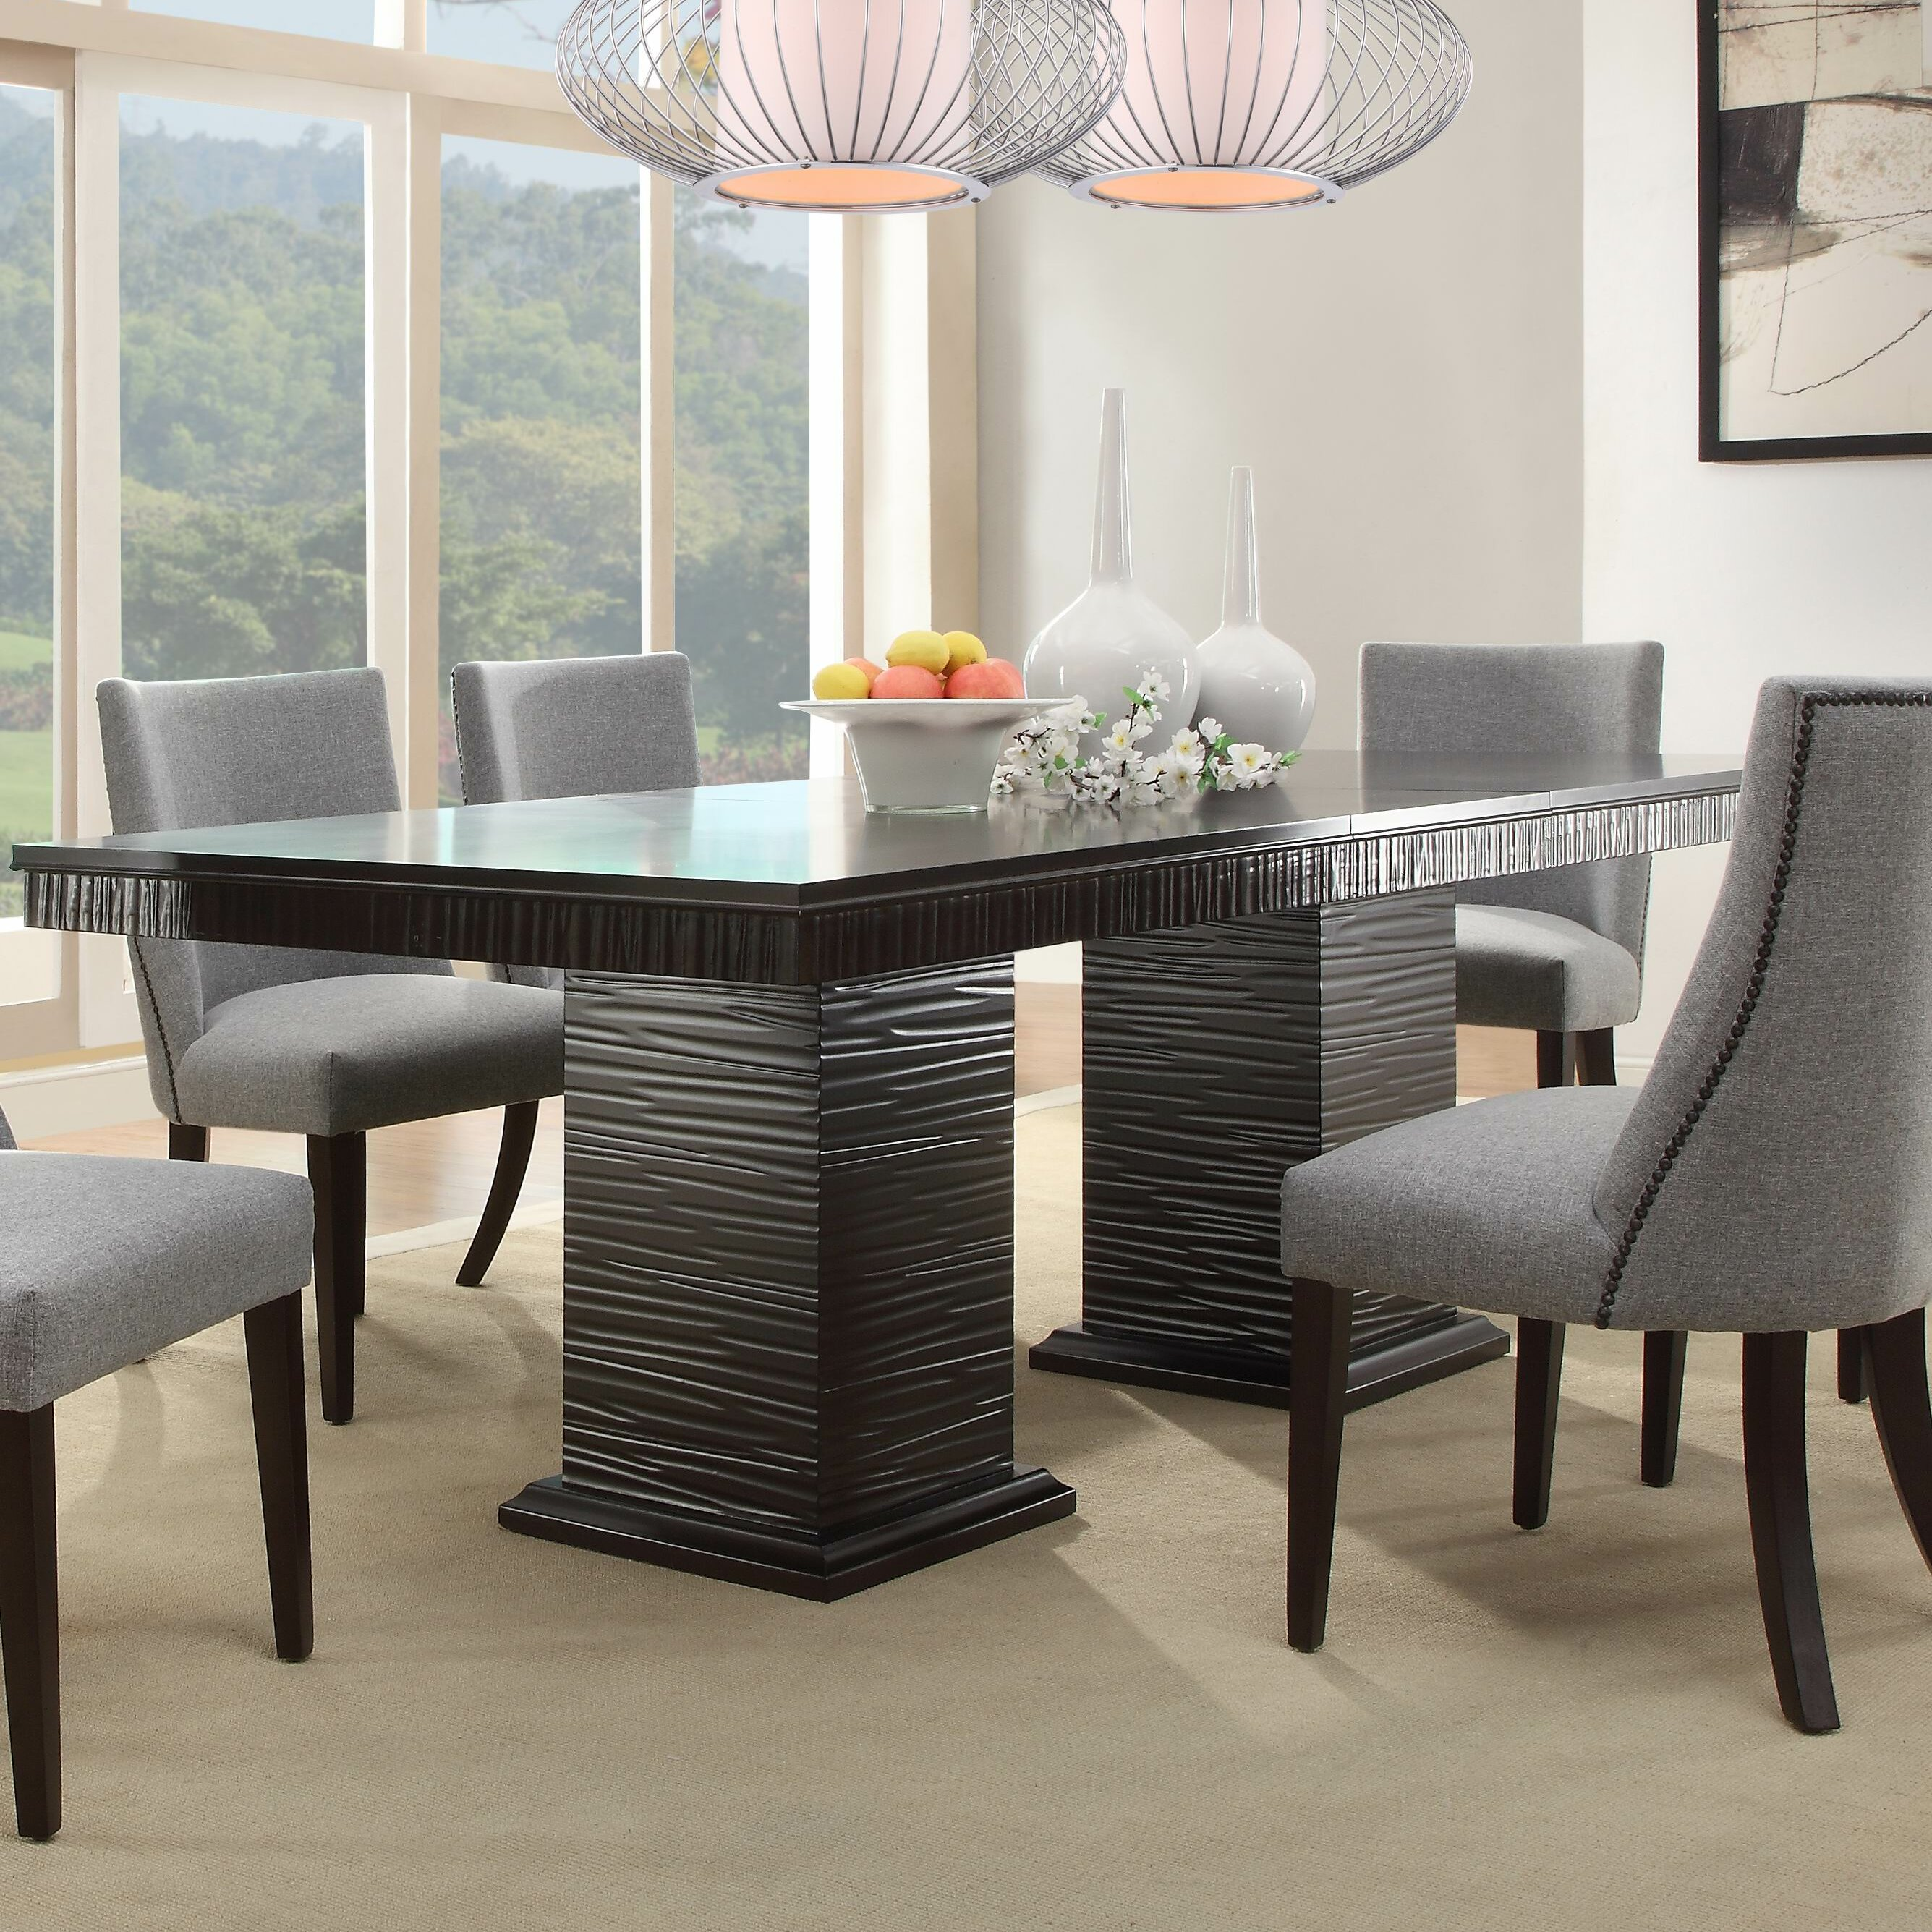 Cadogan extendable dining table reviews joss main